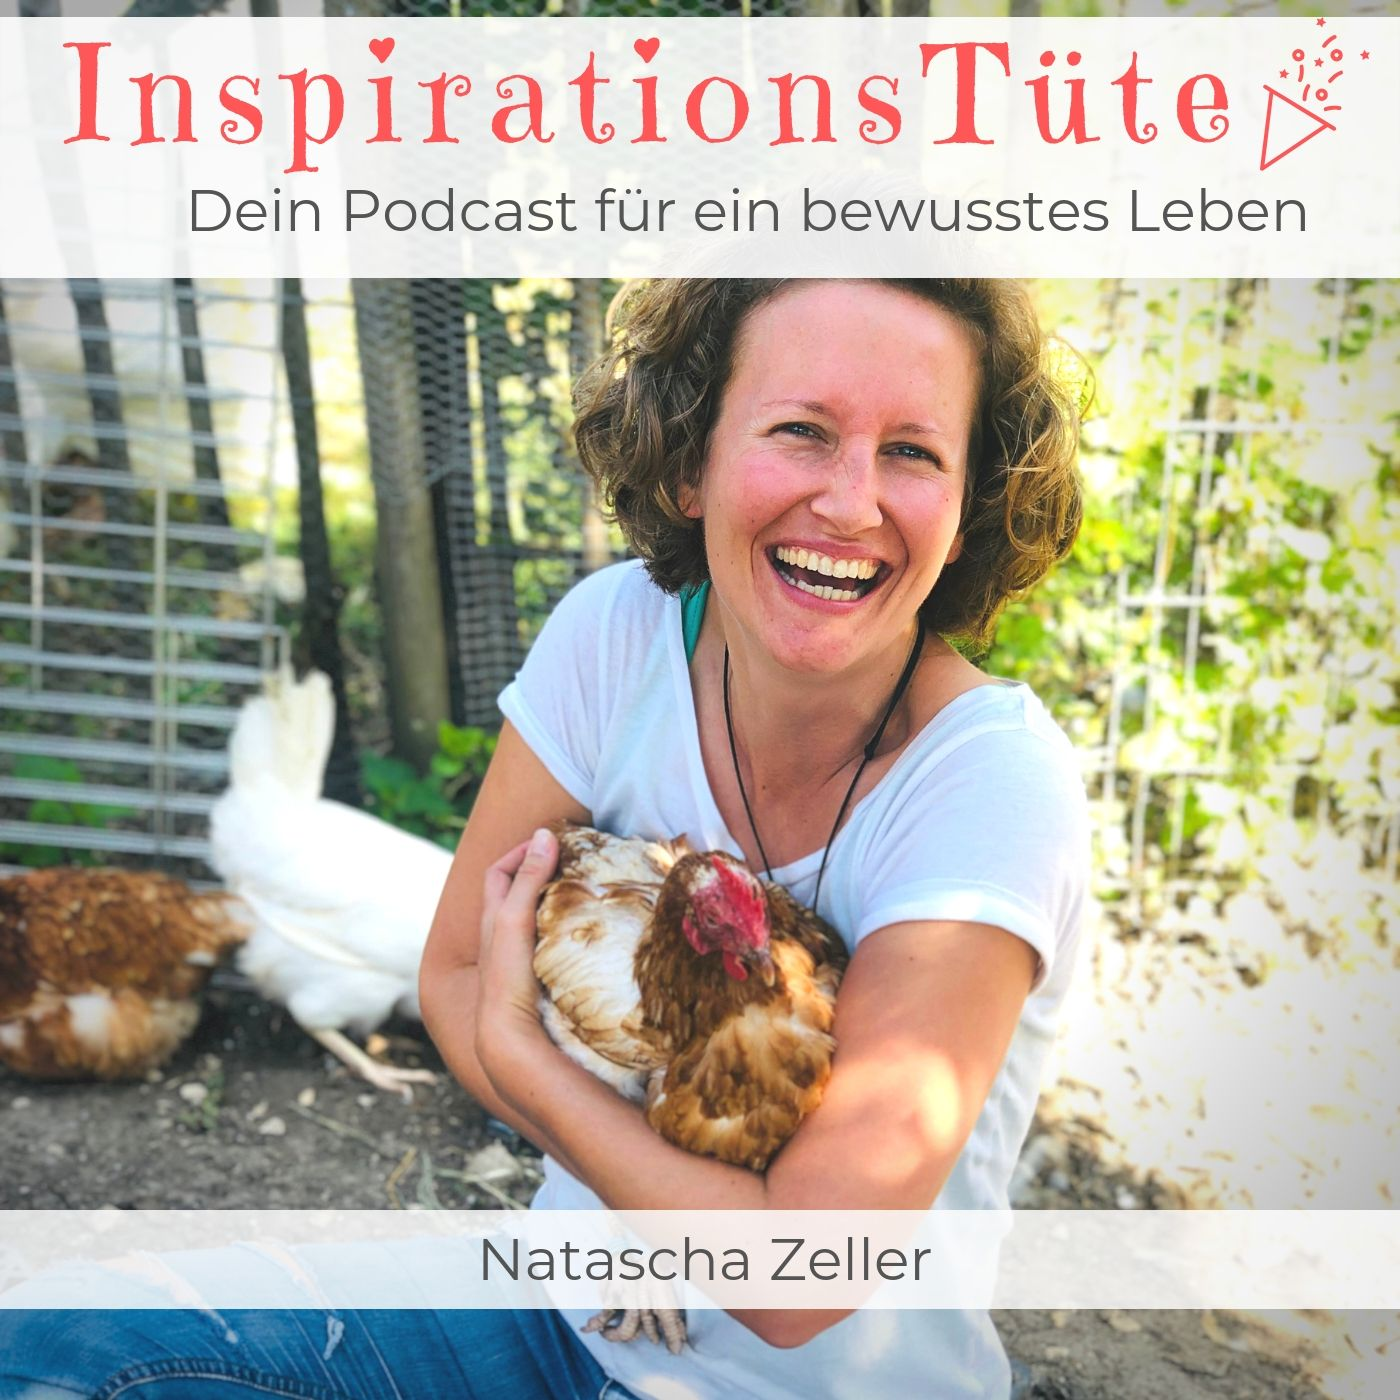 InspirationsTuete's podcast show image